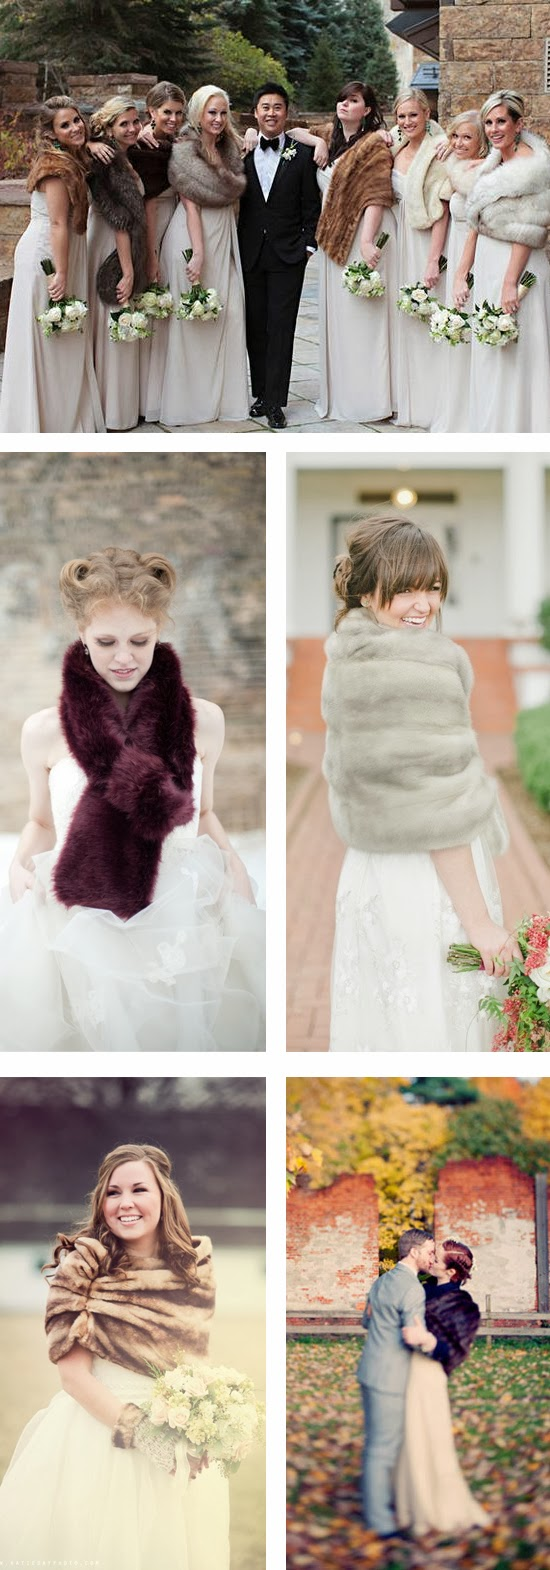 Flaunt Your Wedding Fur